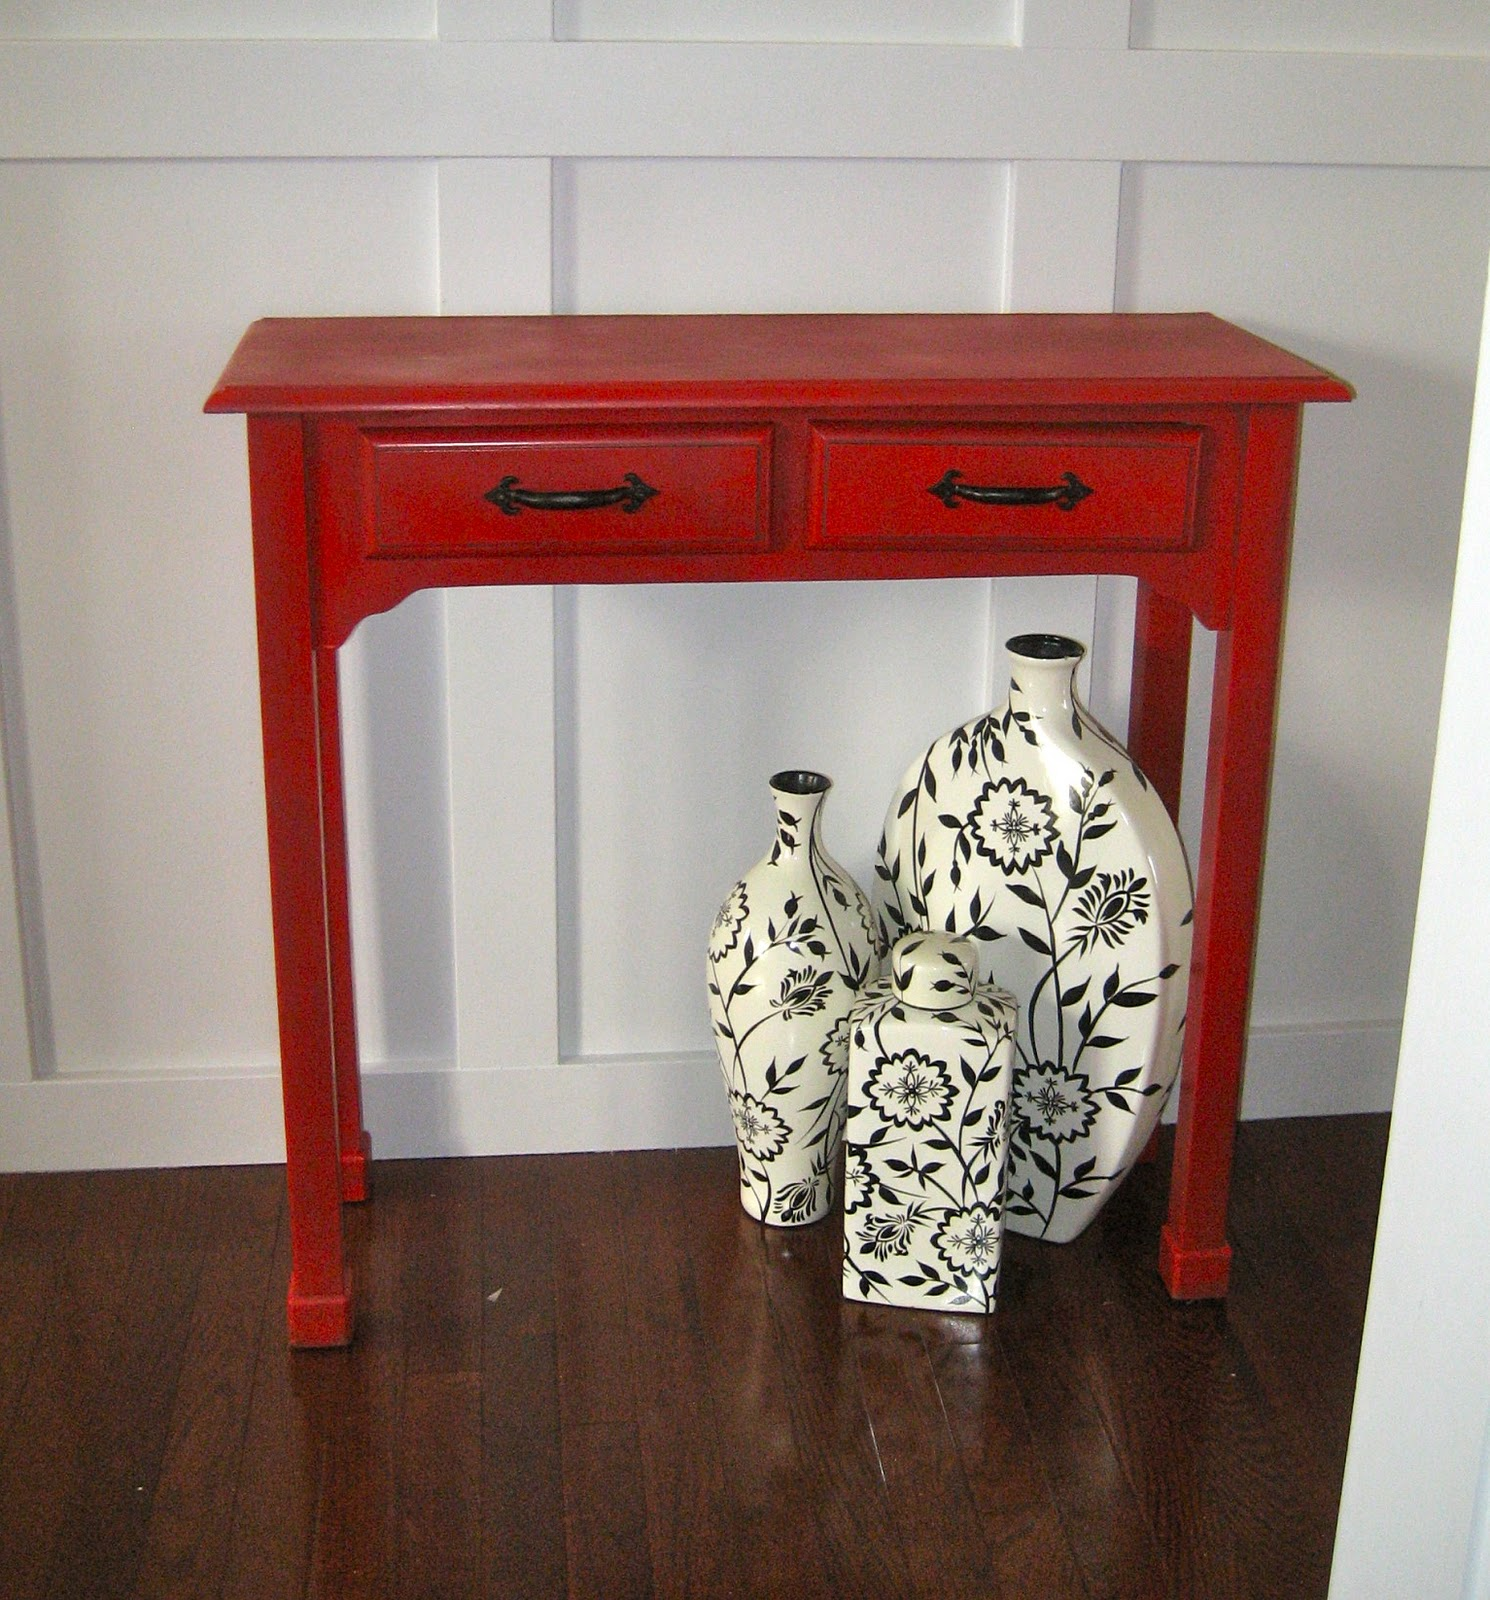 remodelaholic red painted and glazed accent table img wood big umbrellas for shade modern furniture coffee small end tables inexpensive console mirrored glass with shelf designs